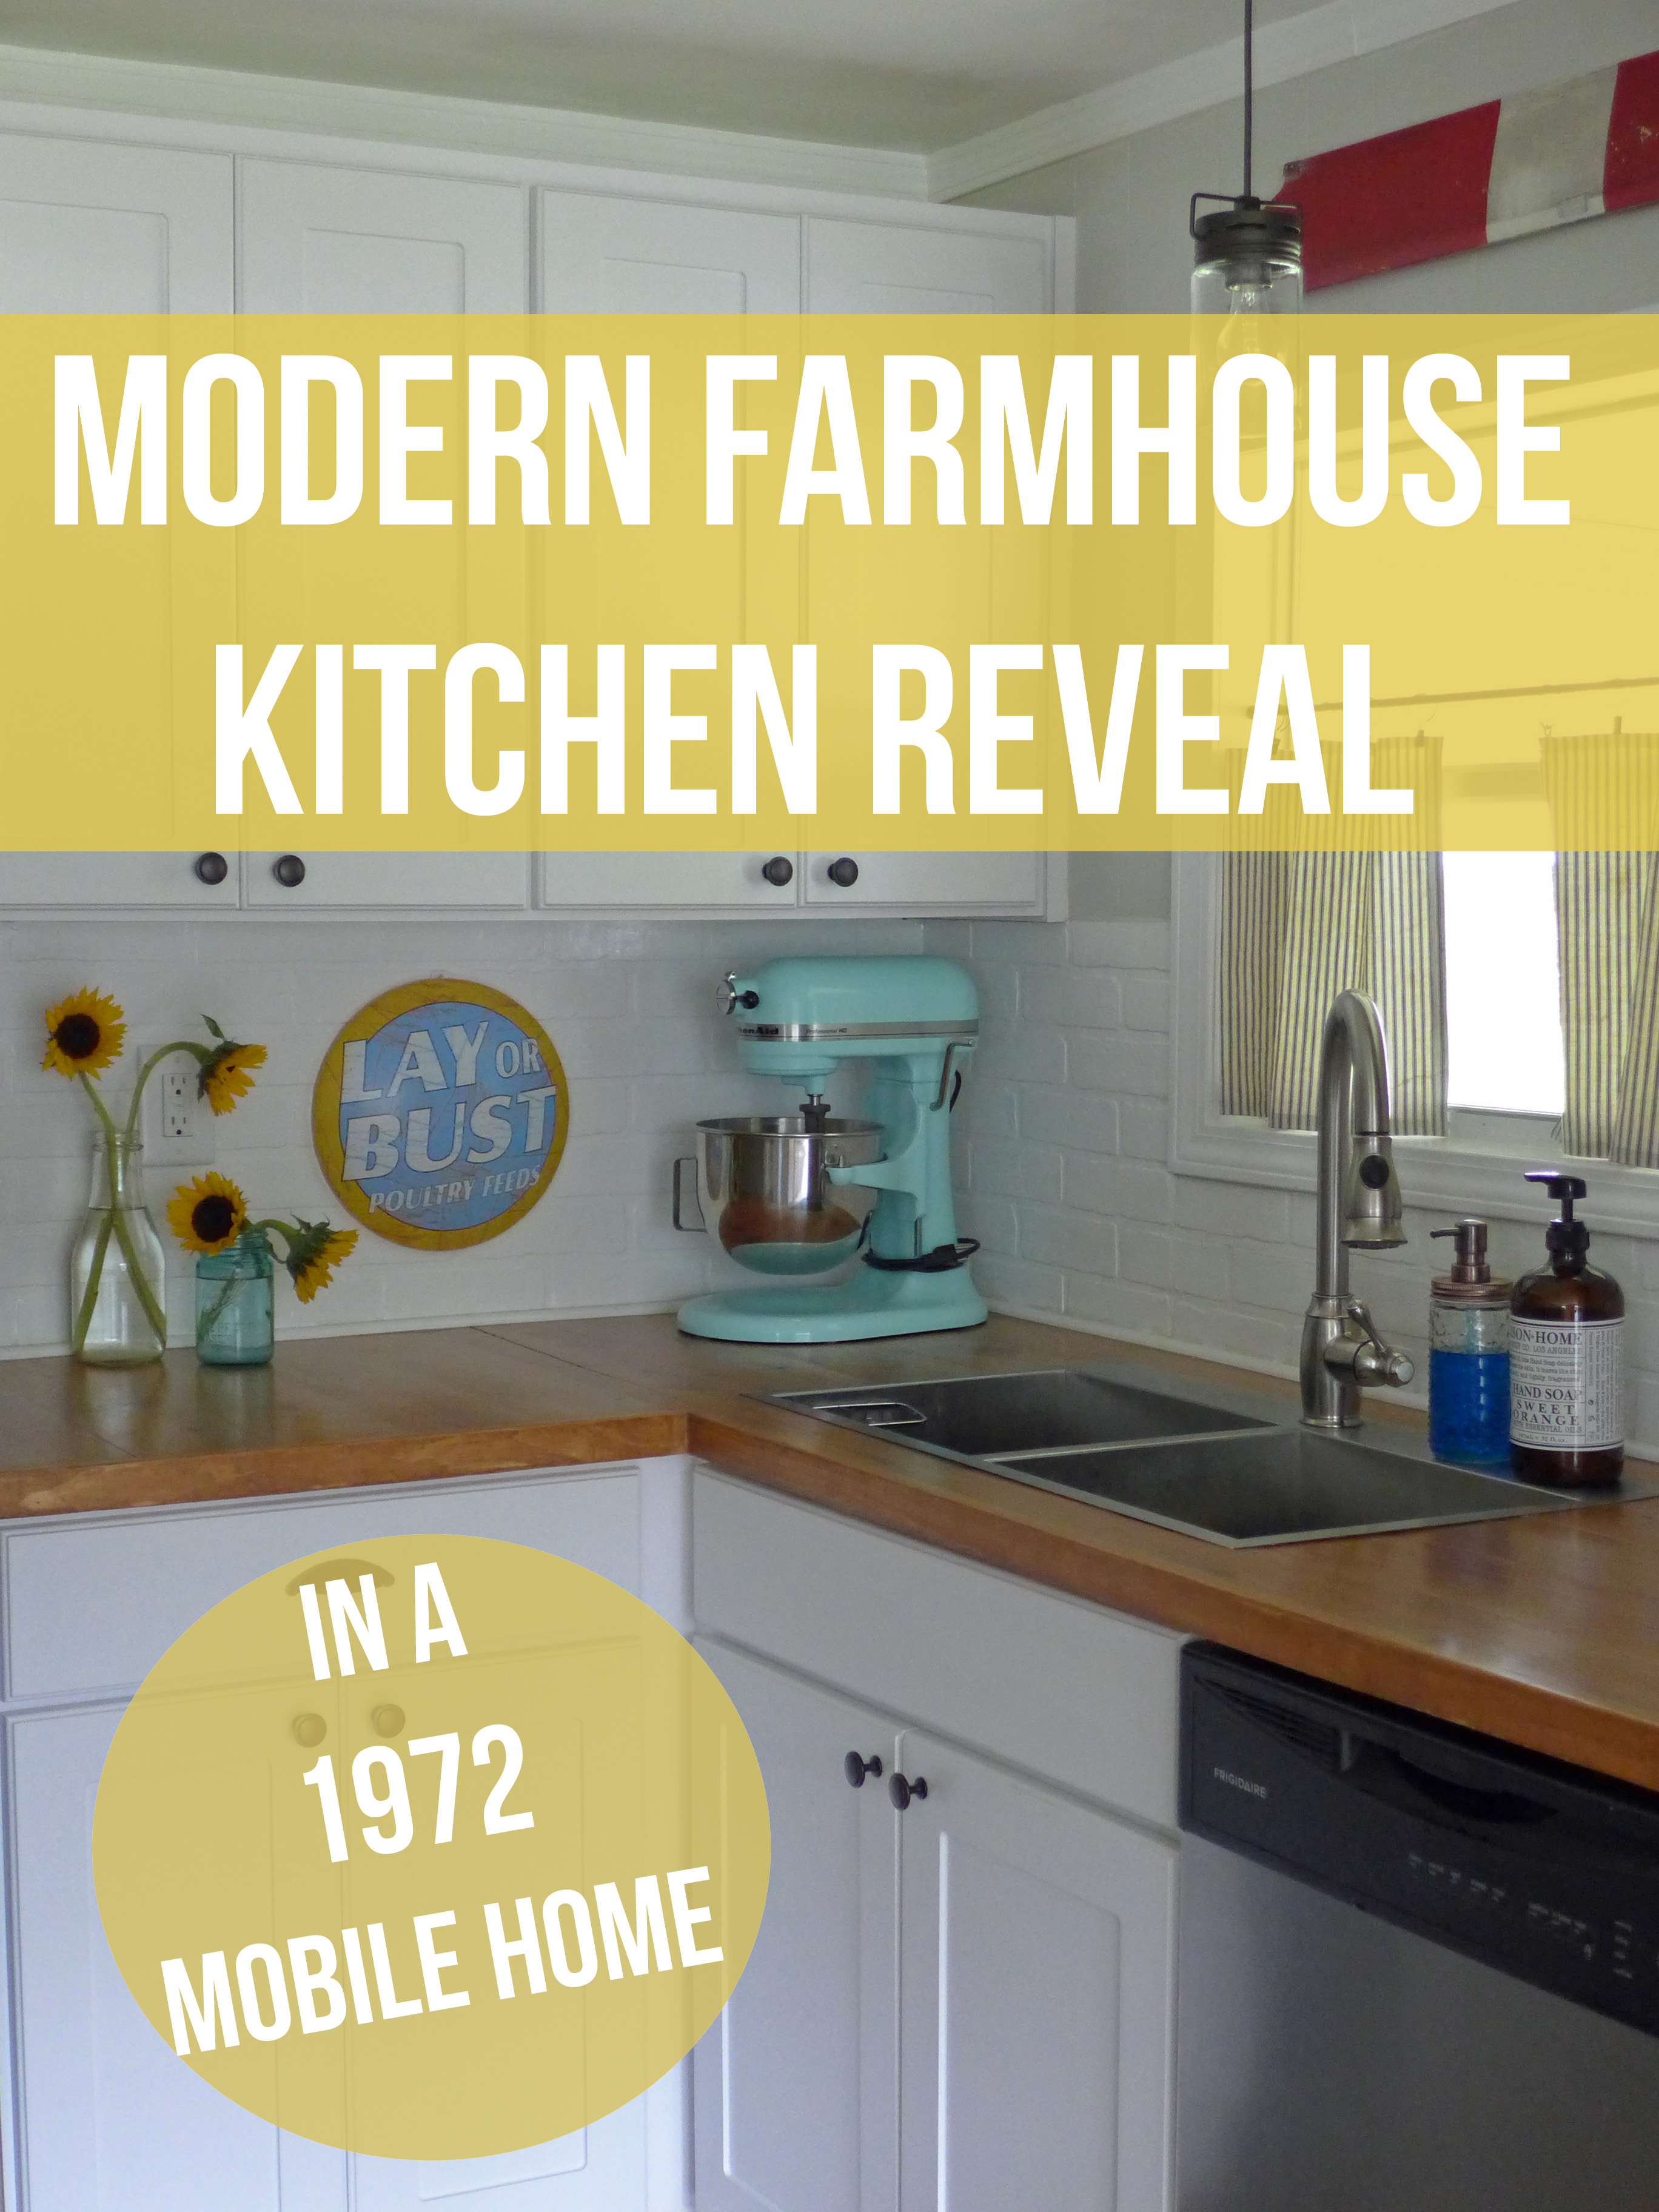 Modern Farmhouse Kitchen Reveal in a 1972 Mobile Home – The Wannabe on mobile home rustic kitchen ideas, mobile home kitchen organizers, mobile home kitchen plans, mobile home kitchen improvement, mobile home countertop replacement, mobile home countertop refacing, mobile home concrete, mobile home kitchen decorating ideas, mobile home bathroom tile, mobile kitchen counter, mobile home kitchen paint colors, mobile home kitchen islands, mobile home kitchen furniture, mobile home glass, mobile home kitchen appliances, mobile home kitchen cabinets, mobile home stone, mobile home kitchen makeovers, mobile home kitchen updates, mobile home kitchen sinks,